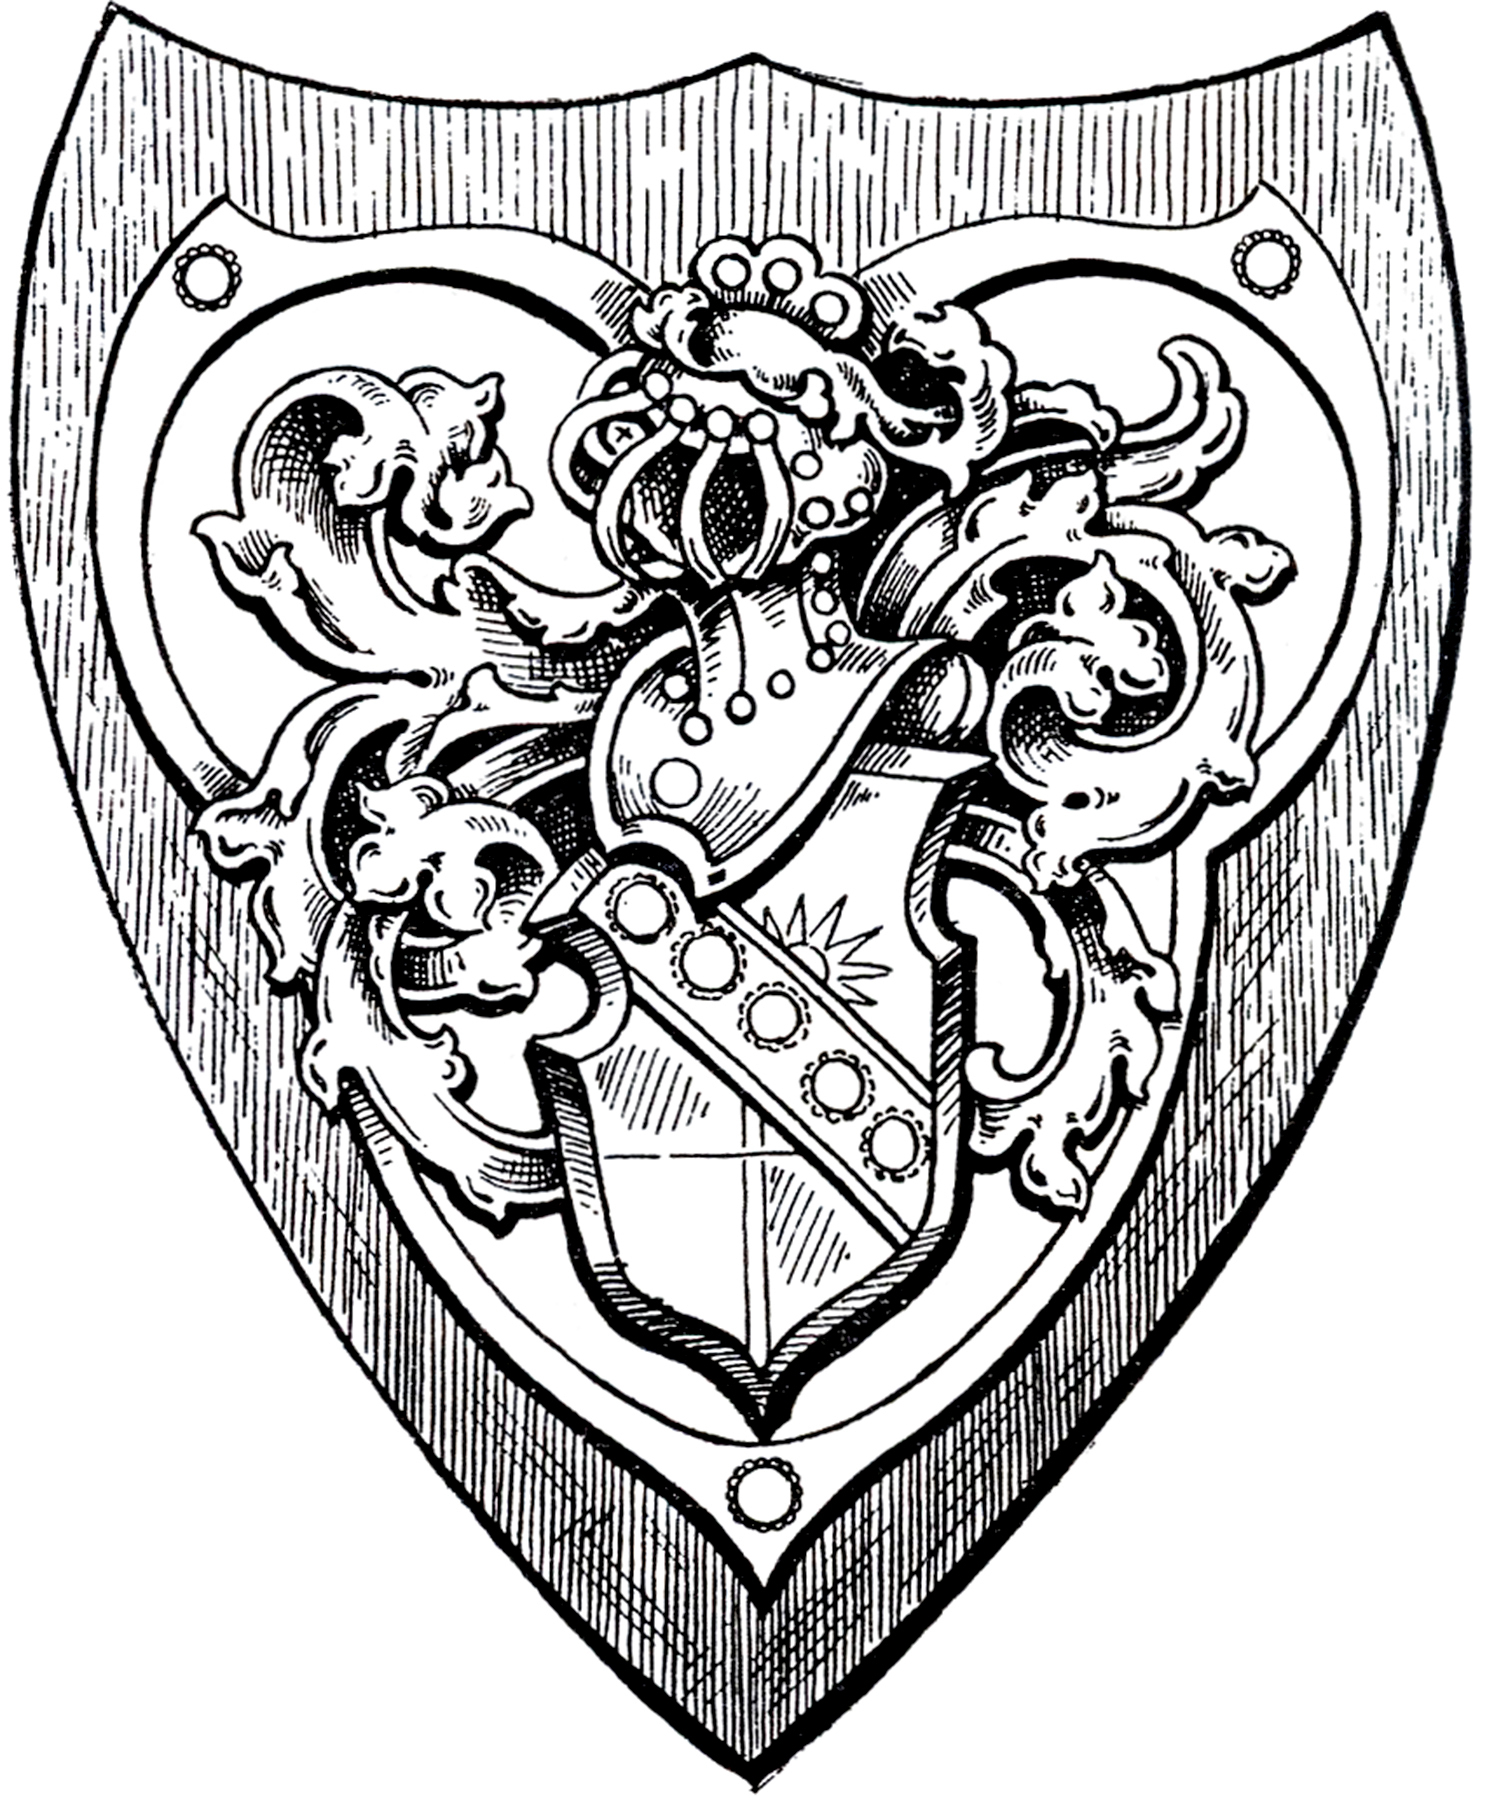 1487x1800 Drawing Of A Shield